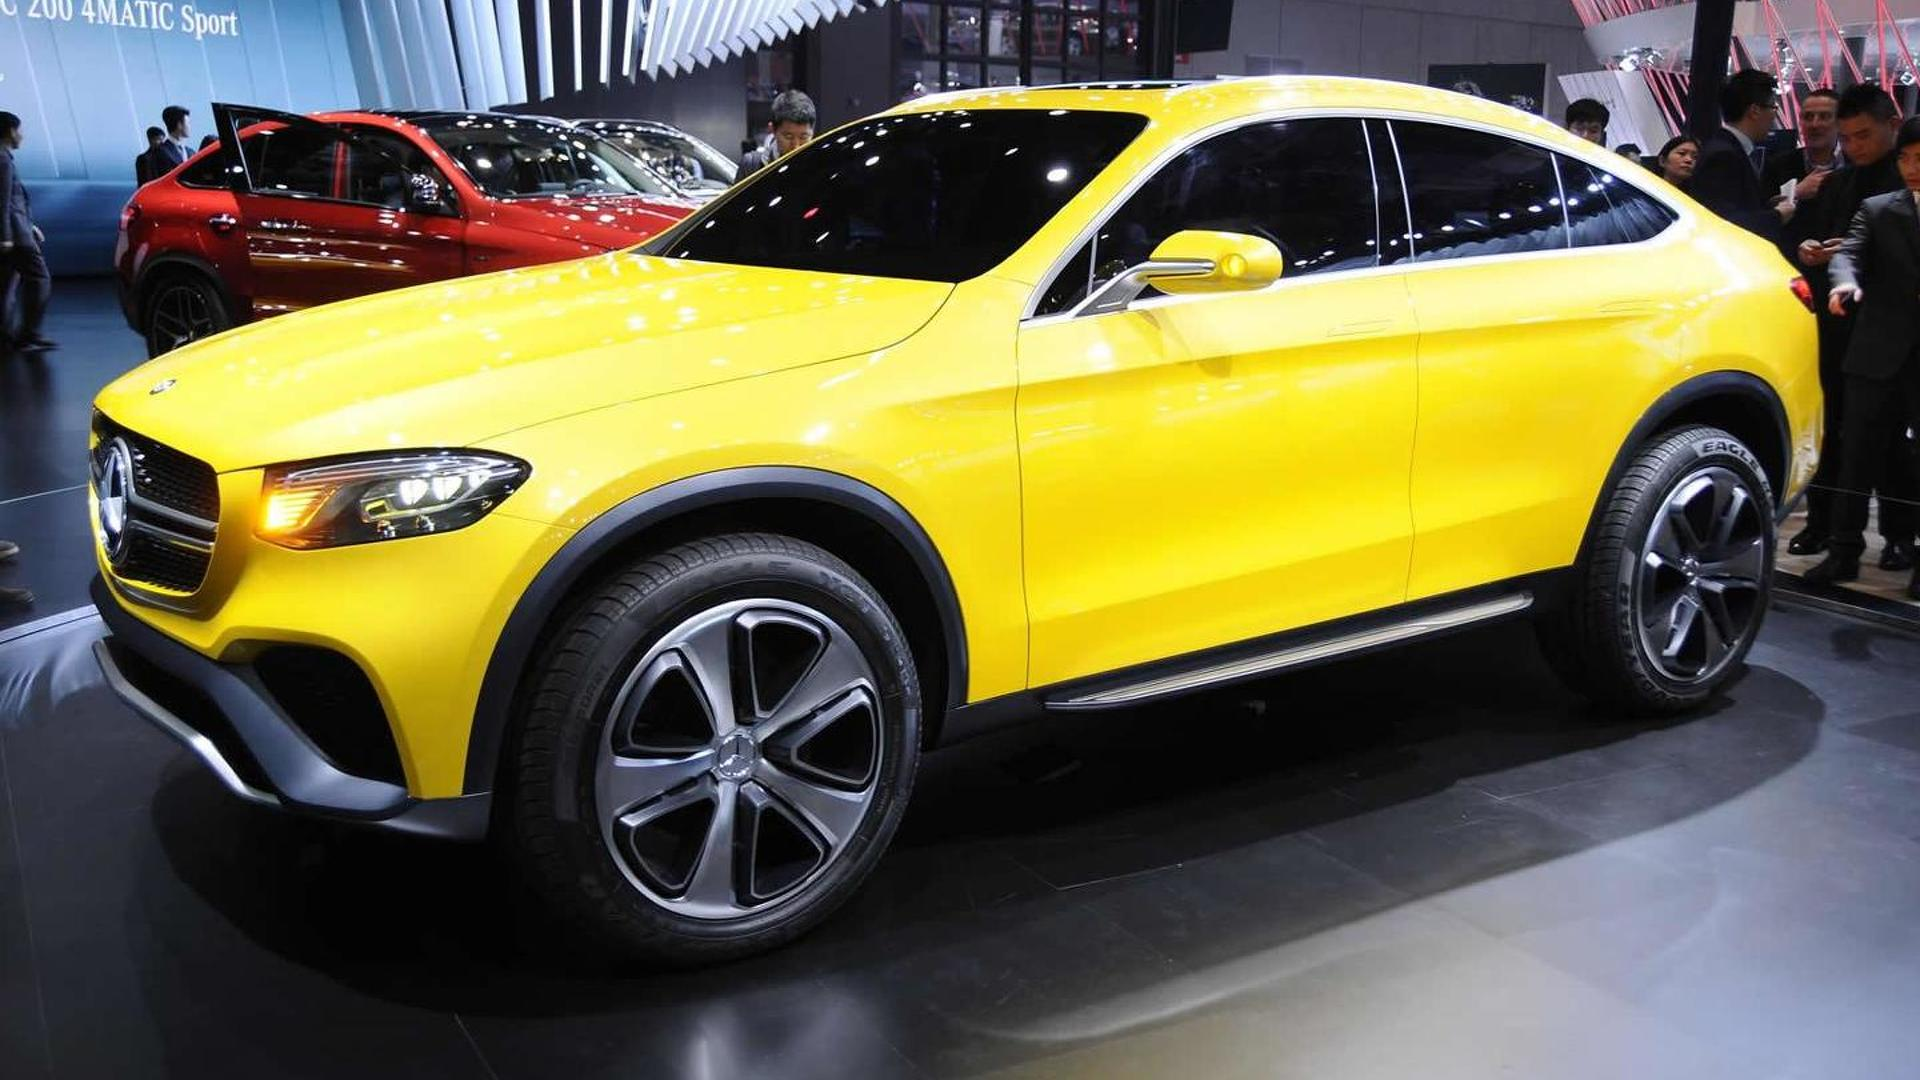 https://icdn-0.motor1.com/images/mgl/QyGl8/s1/2015-563346-mercedes-benz-concept-glc-coupe-at-auto-shanghai-20151.jpg